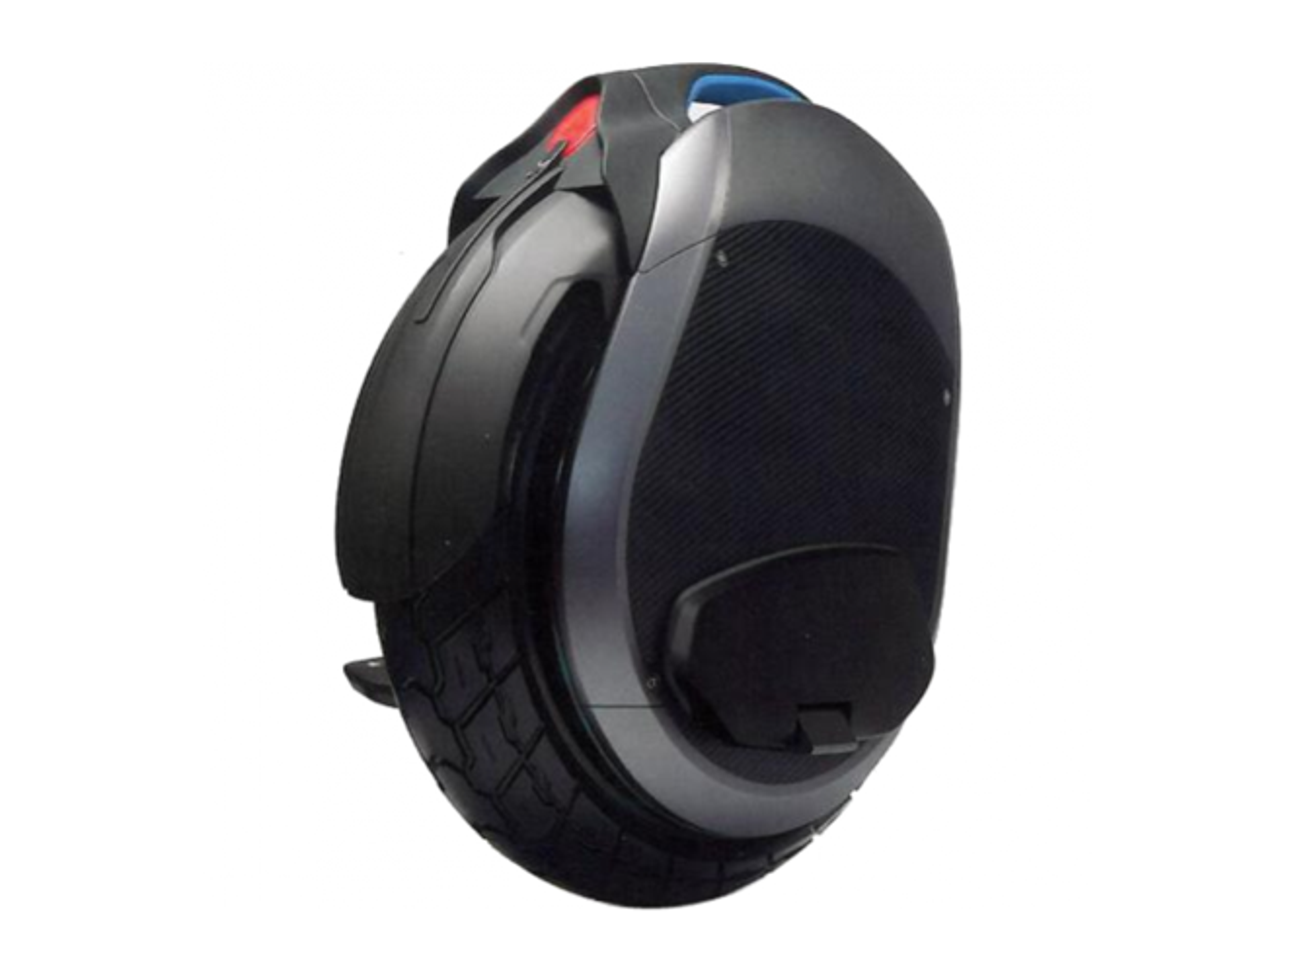 Ninebot One Z10 Electric Balance Unicycle 1 Year Warranty NEXT DAY DELIVERY